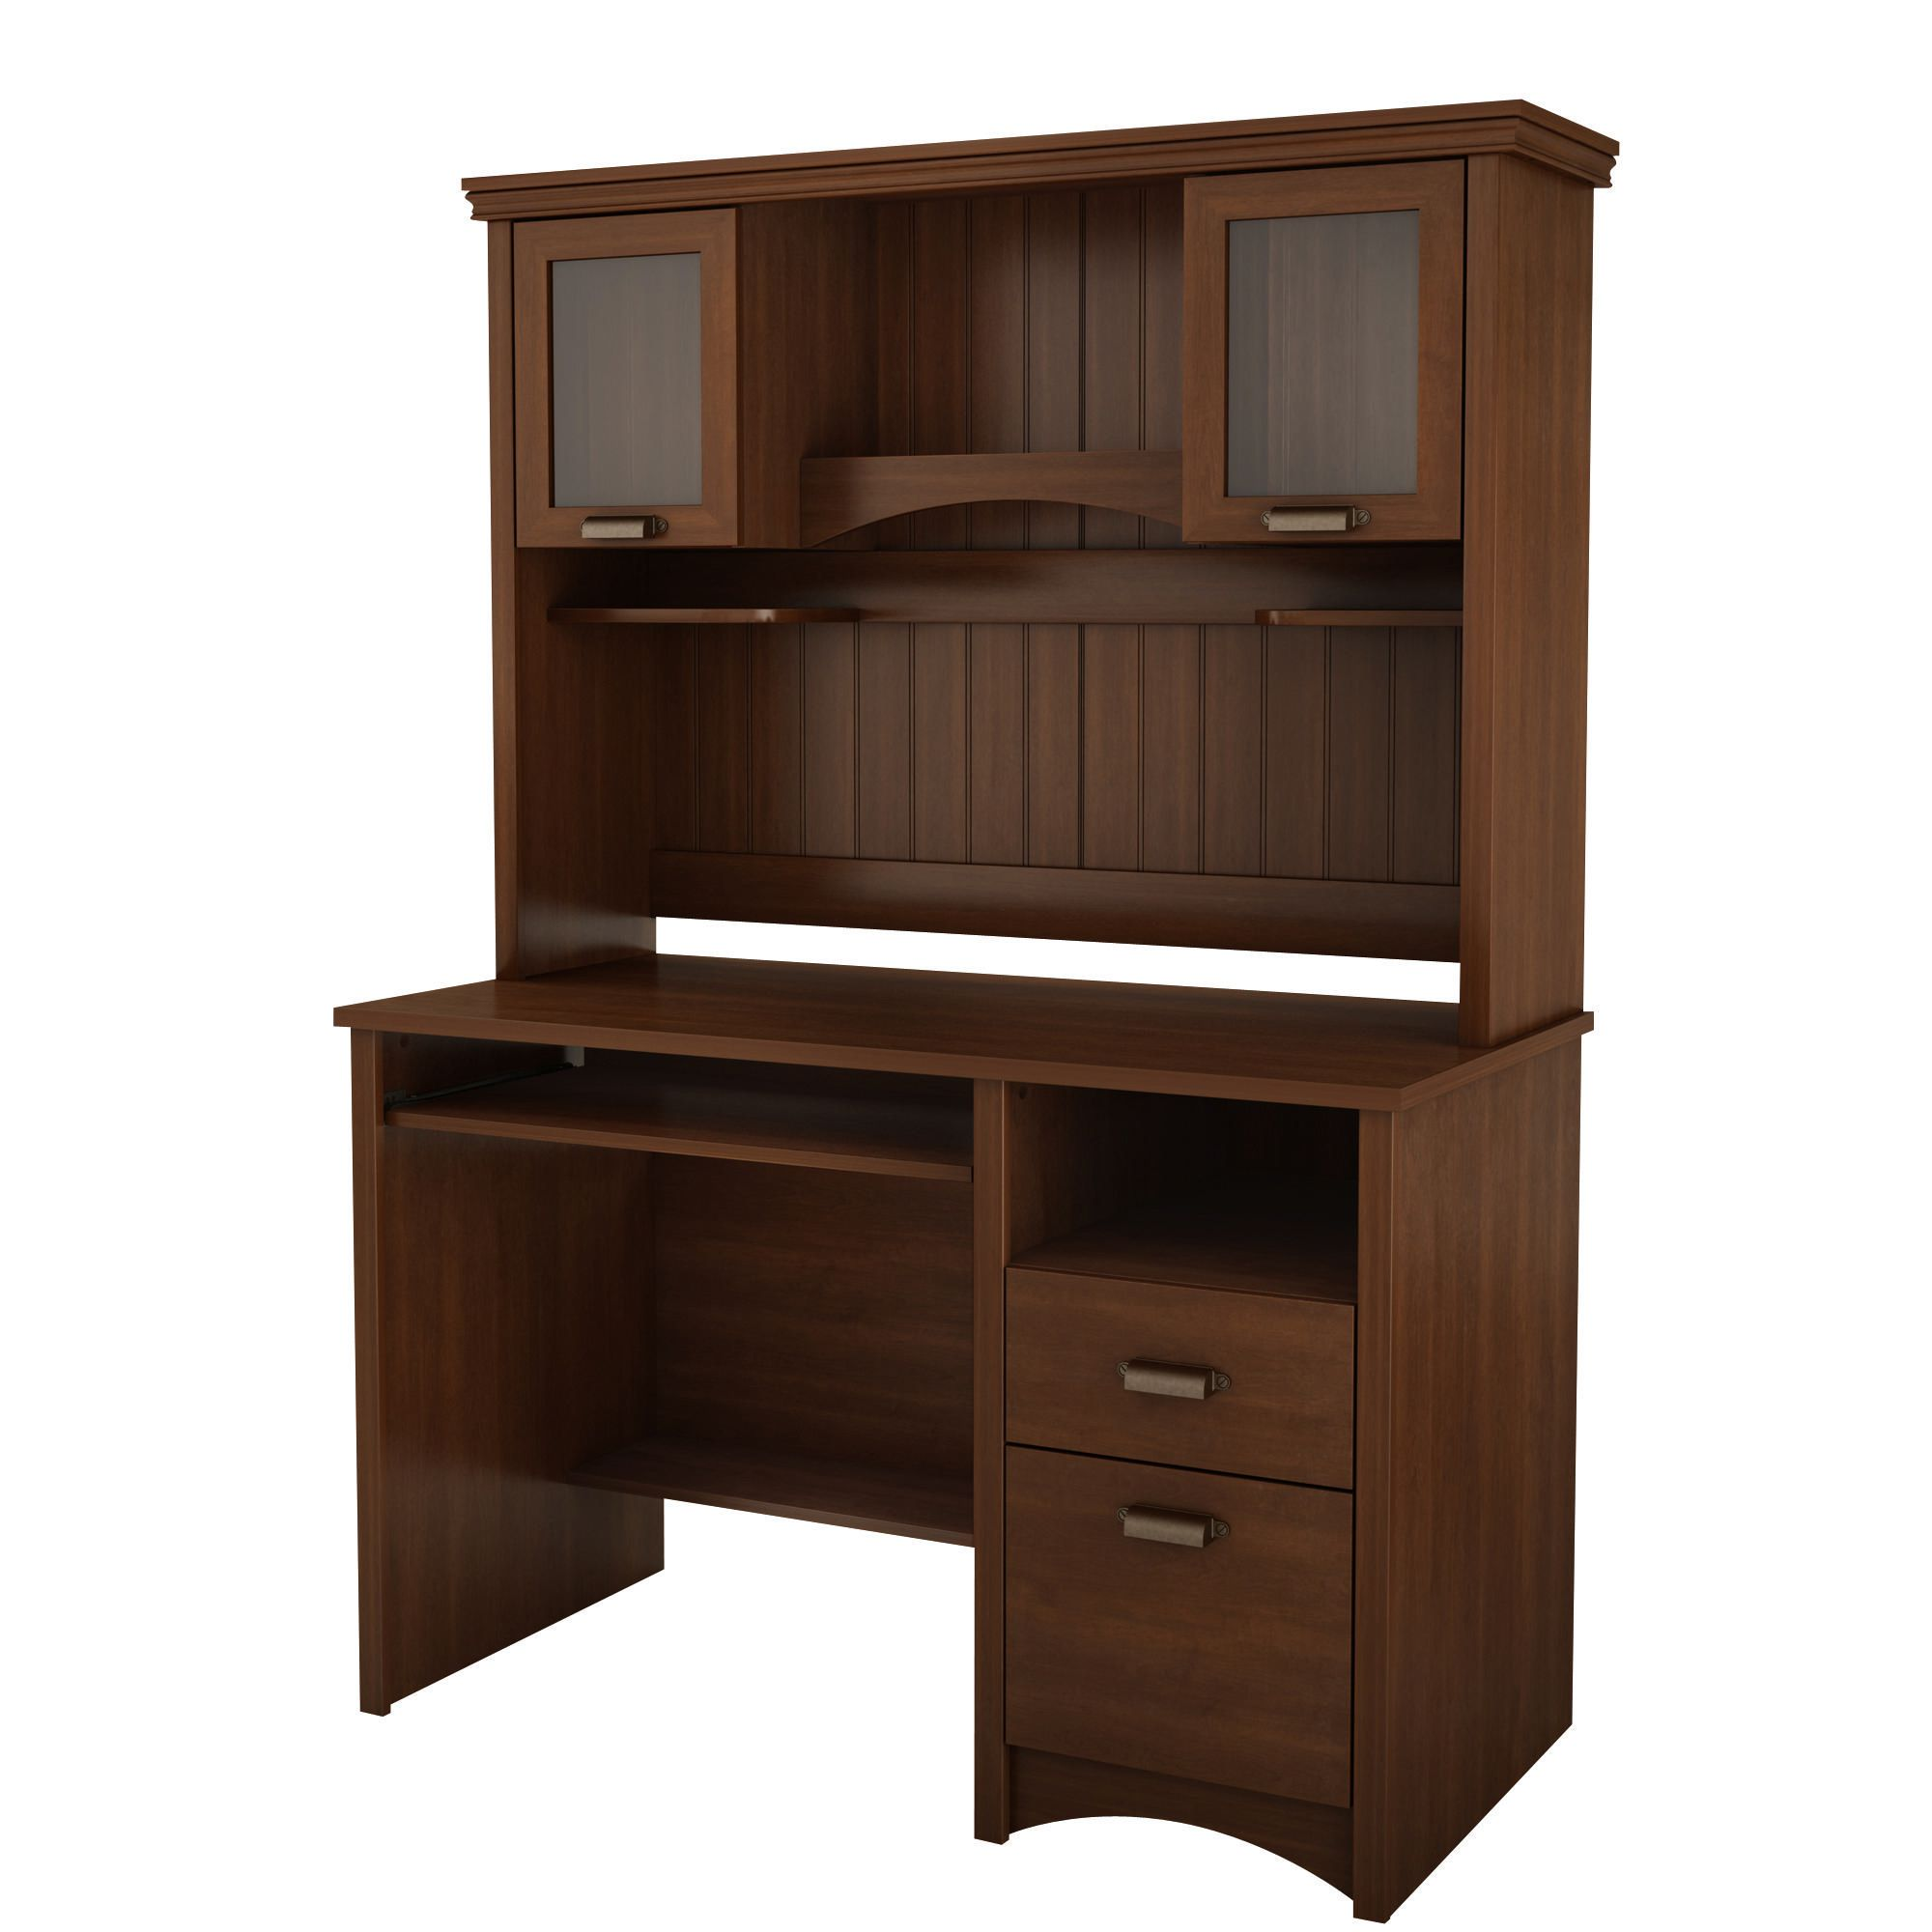 first compact home white desk most design office table computer corner wood for cheap desks rate